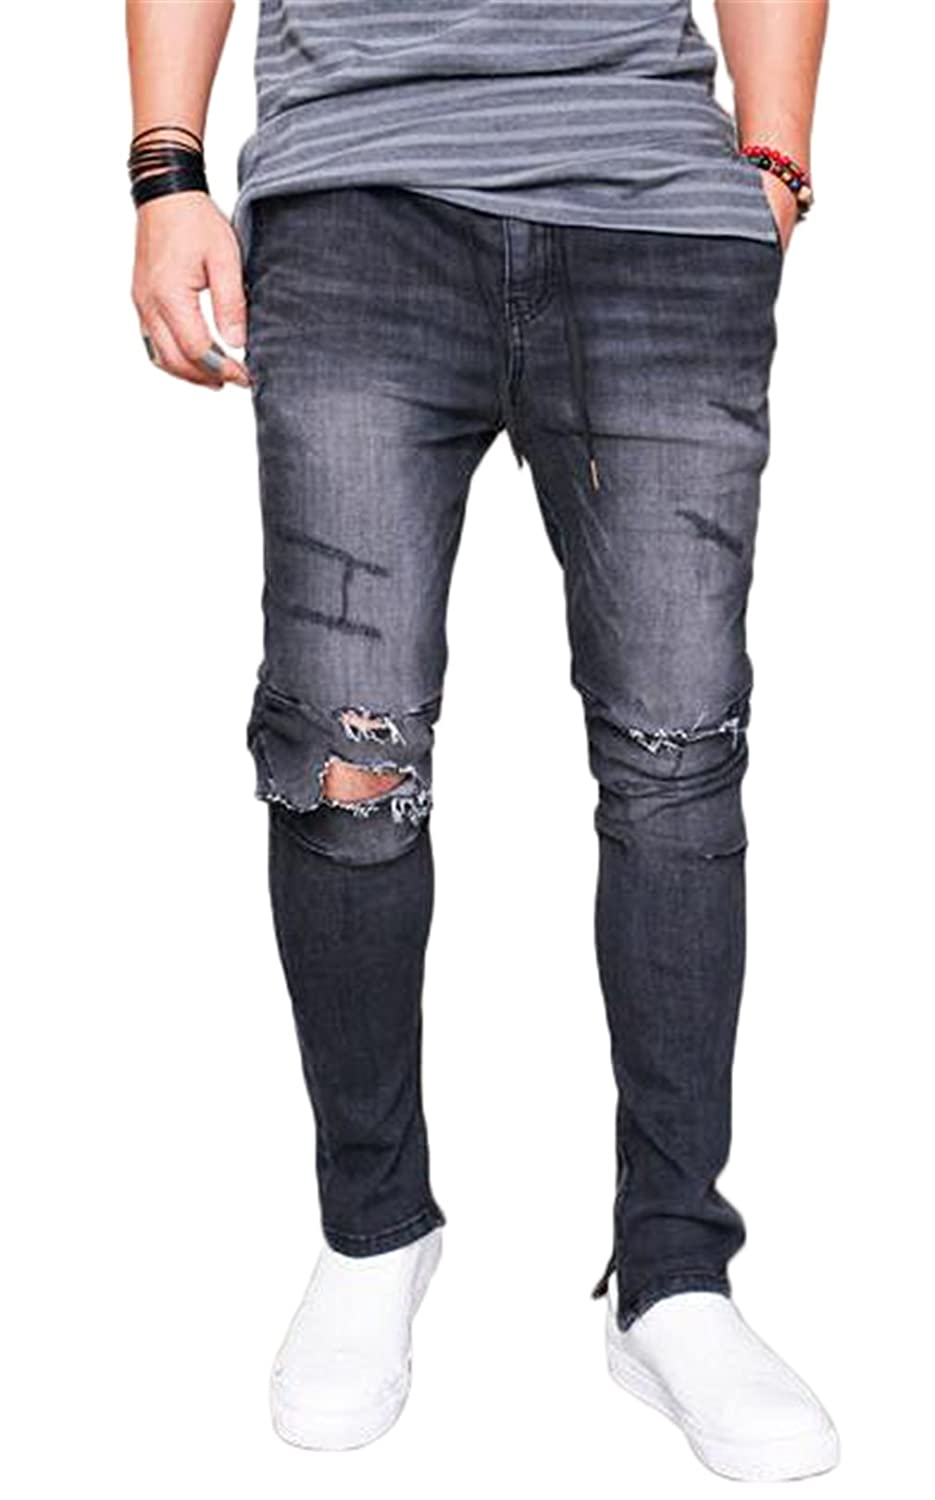 45a8336f ... brings a new jeans wearing experience. Mediumwaisted, Elastic Waist,Big  Ripped Destroyed Holes,Tapered Leg with Zipper Closure Fashion denim, the  pants ...